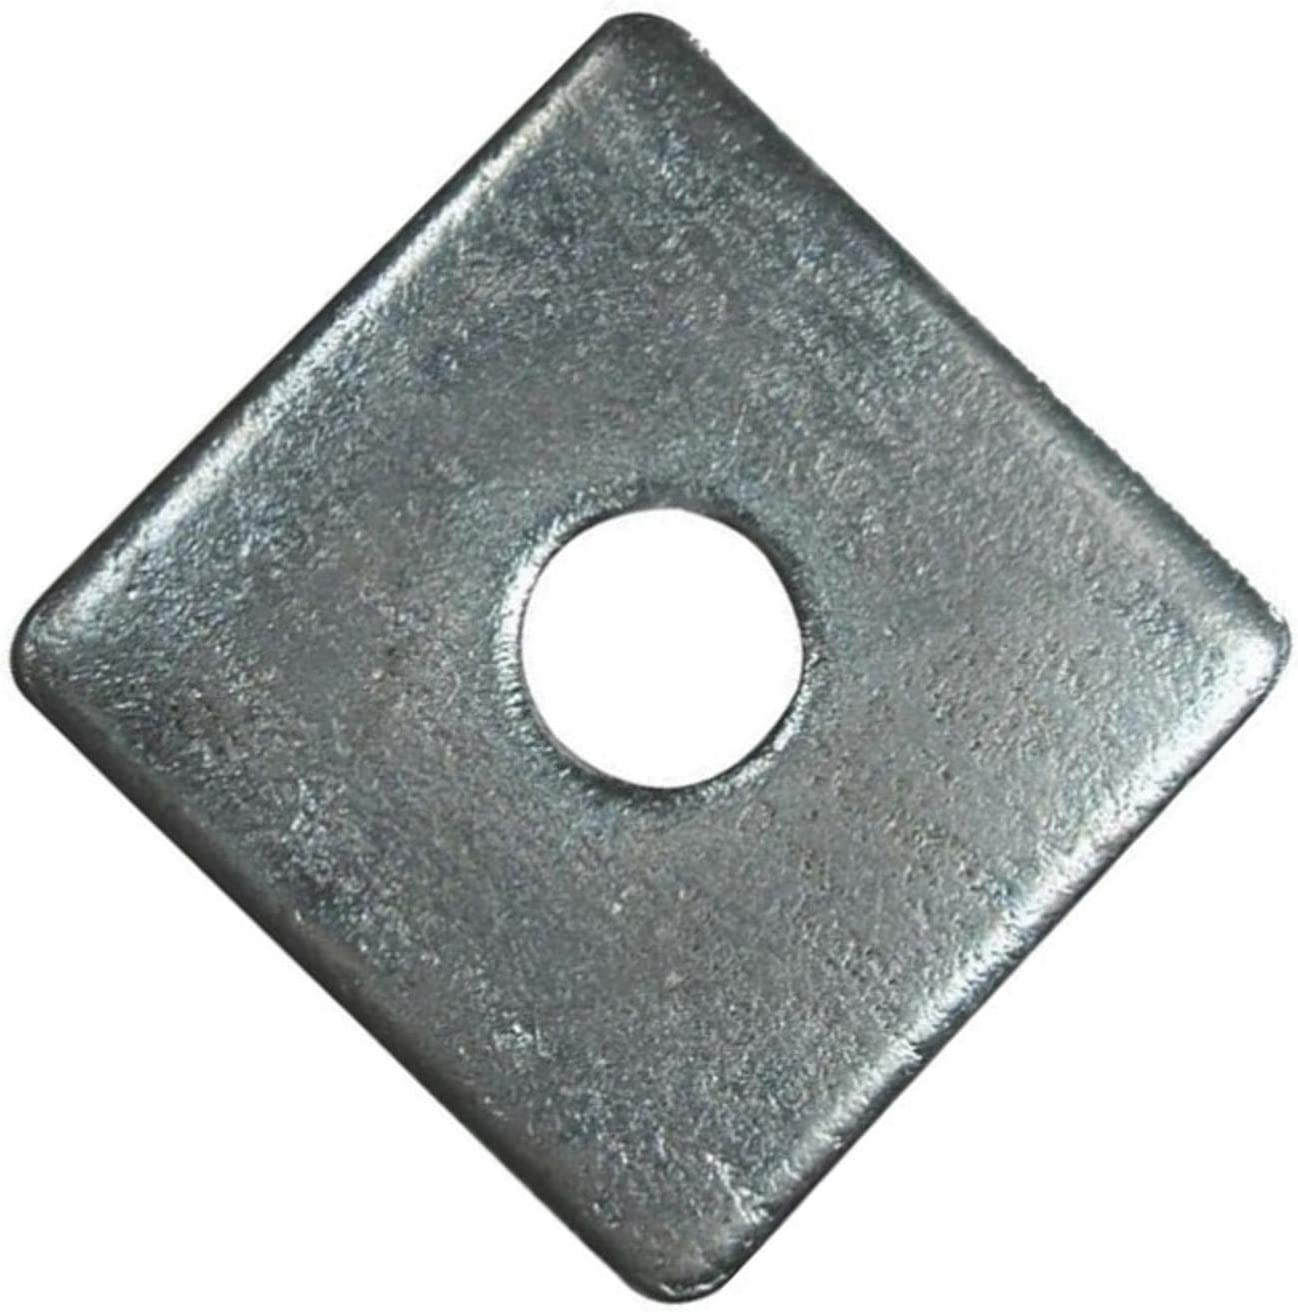 0.131 Inch ID x 0.5 Inch OD 500 PK SS-4-500 Back-Up Washer 1//8 Inch Square Marson Zinc 500//Pack Steel